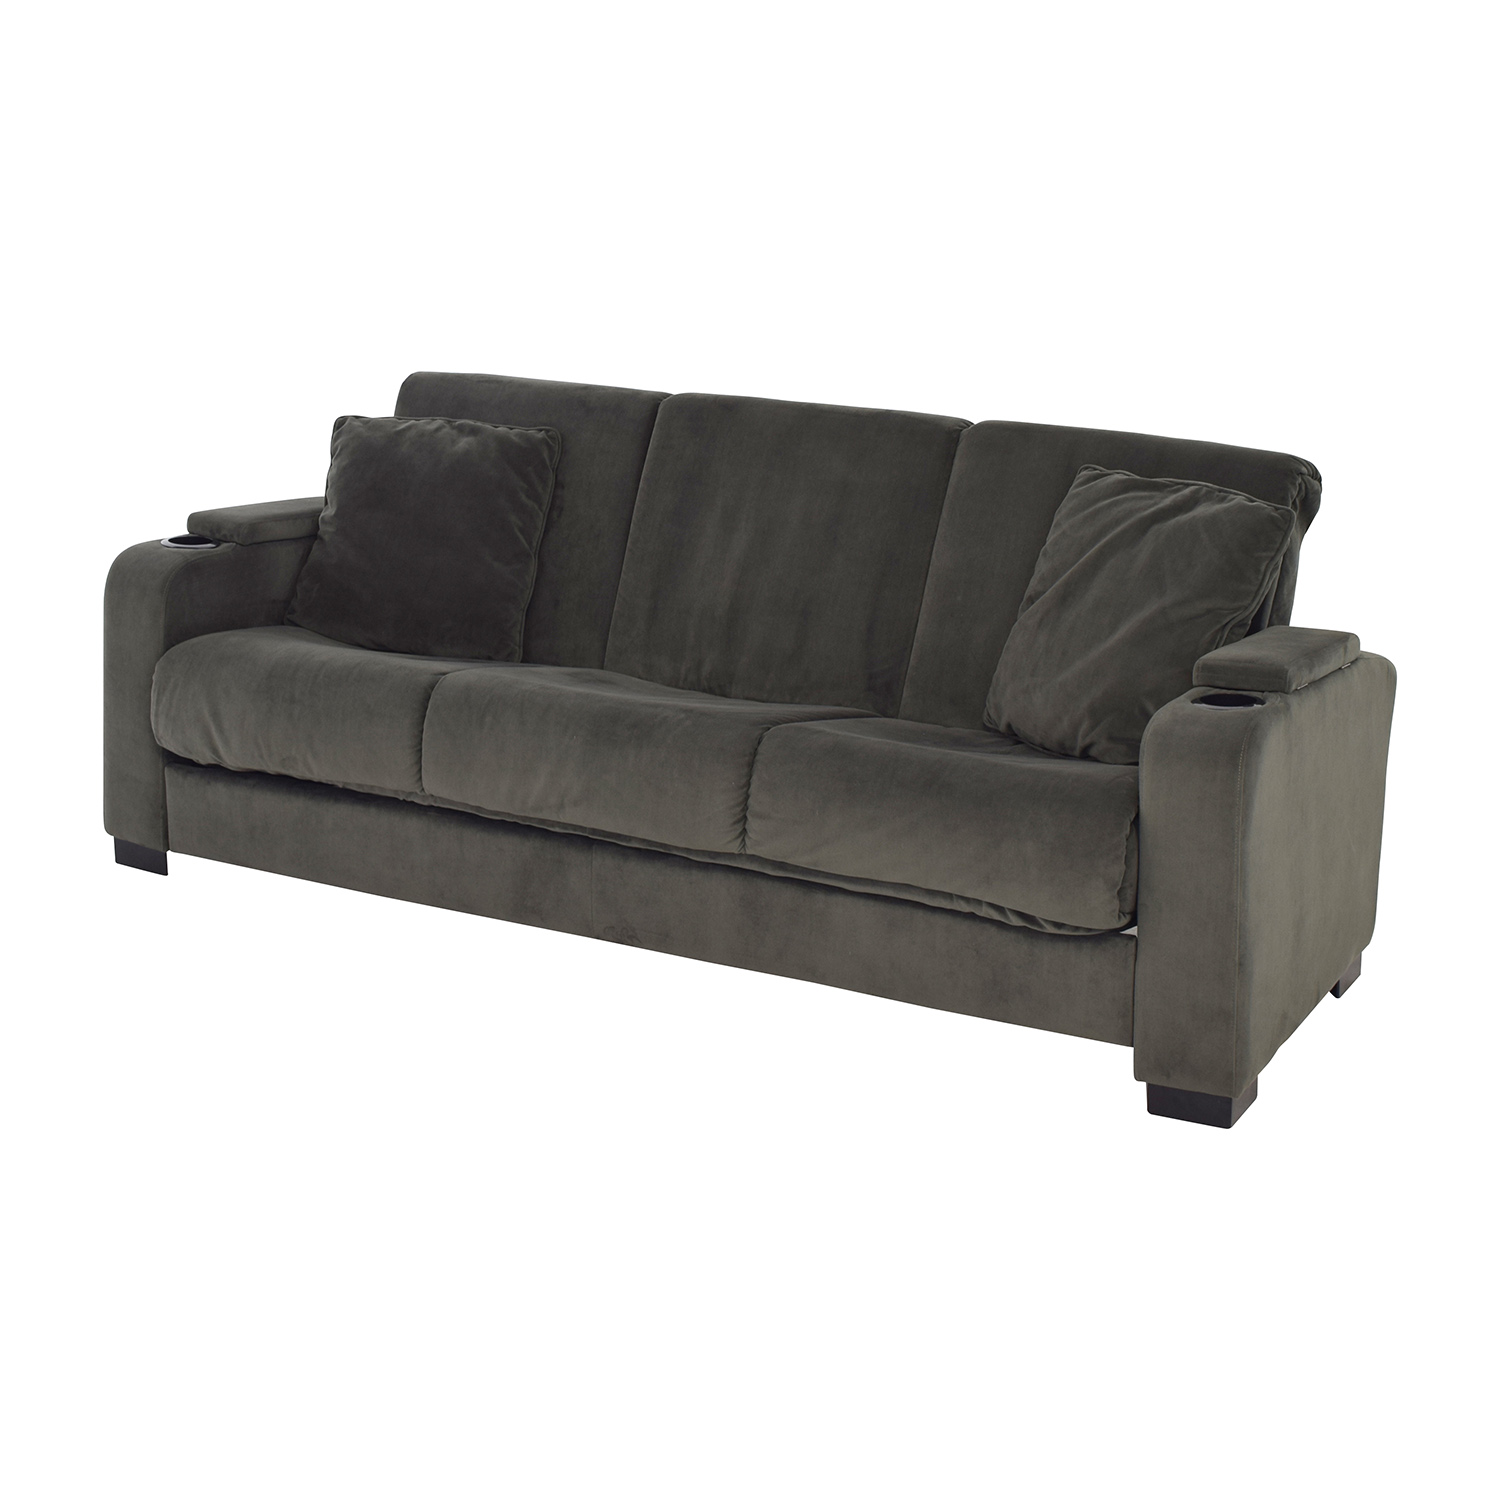 ... Shop Handy Living Olivia Convert A Couch Sleeper Sofa Handy Living  Sofas ...